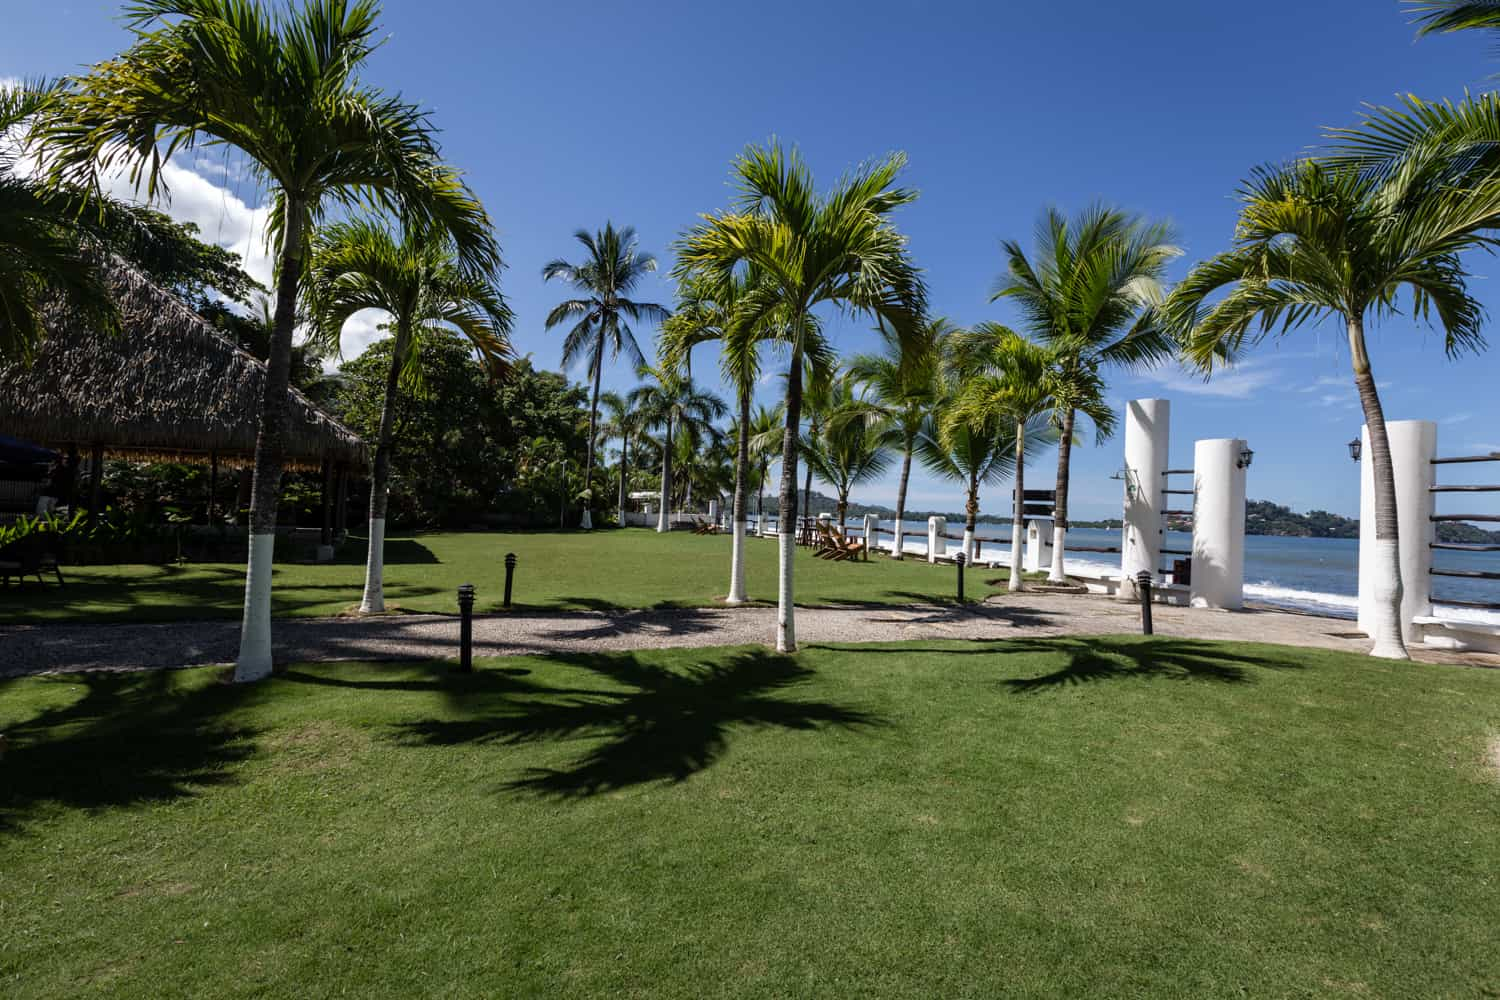 Venue for large wedding ceremonies and receptions on beach in Guanacaste.